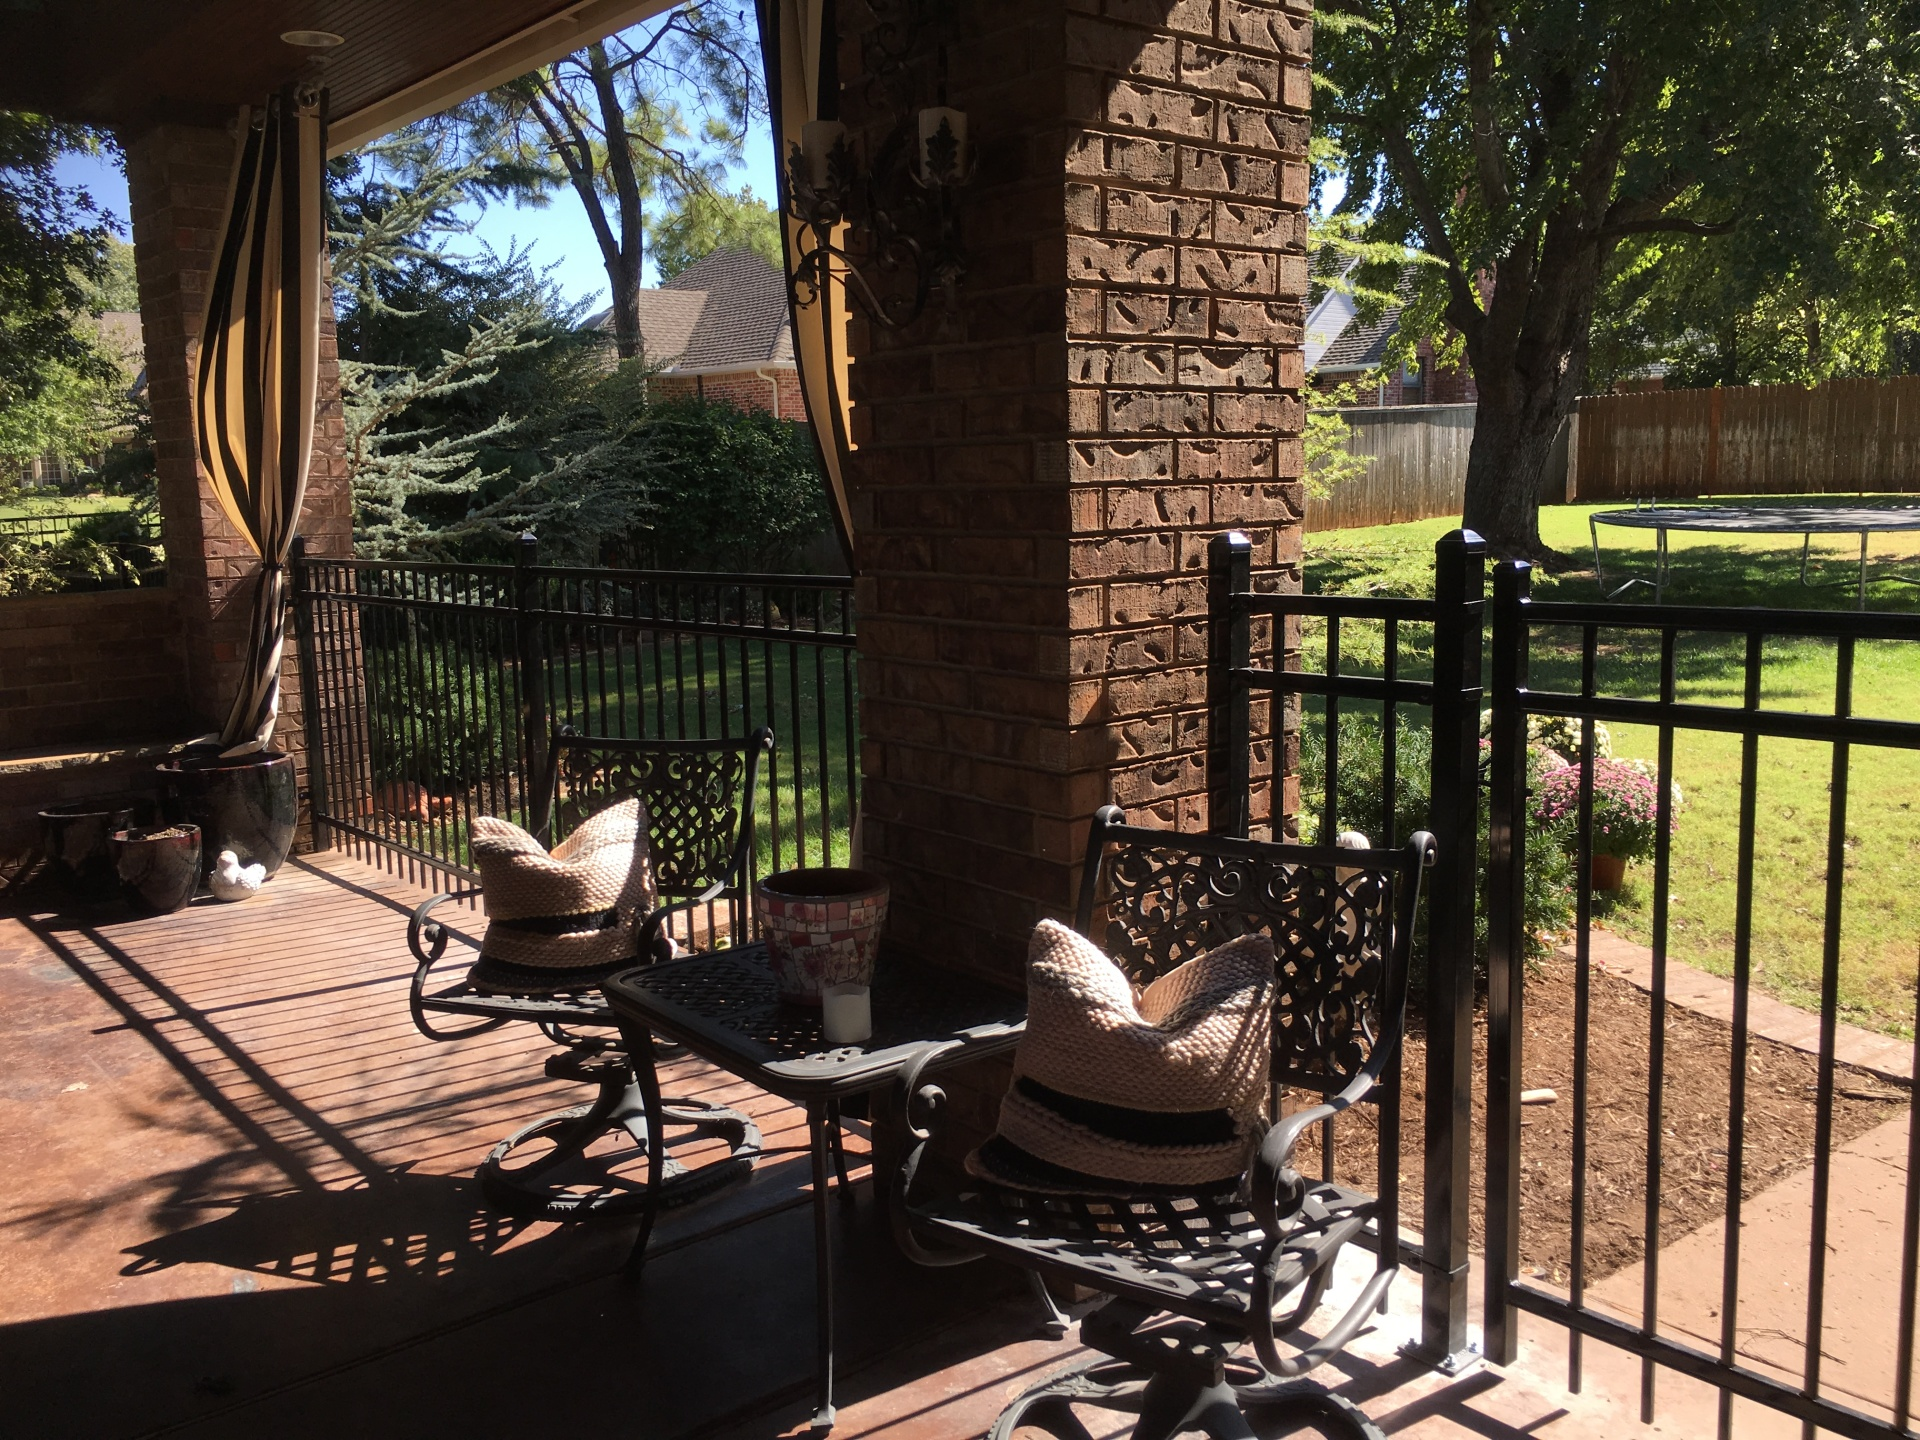 Iron Security Patio Fence, Oklahoma Fence Iron Company